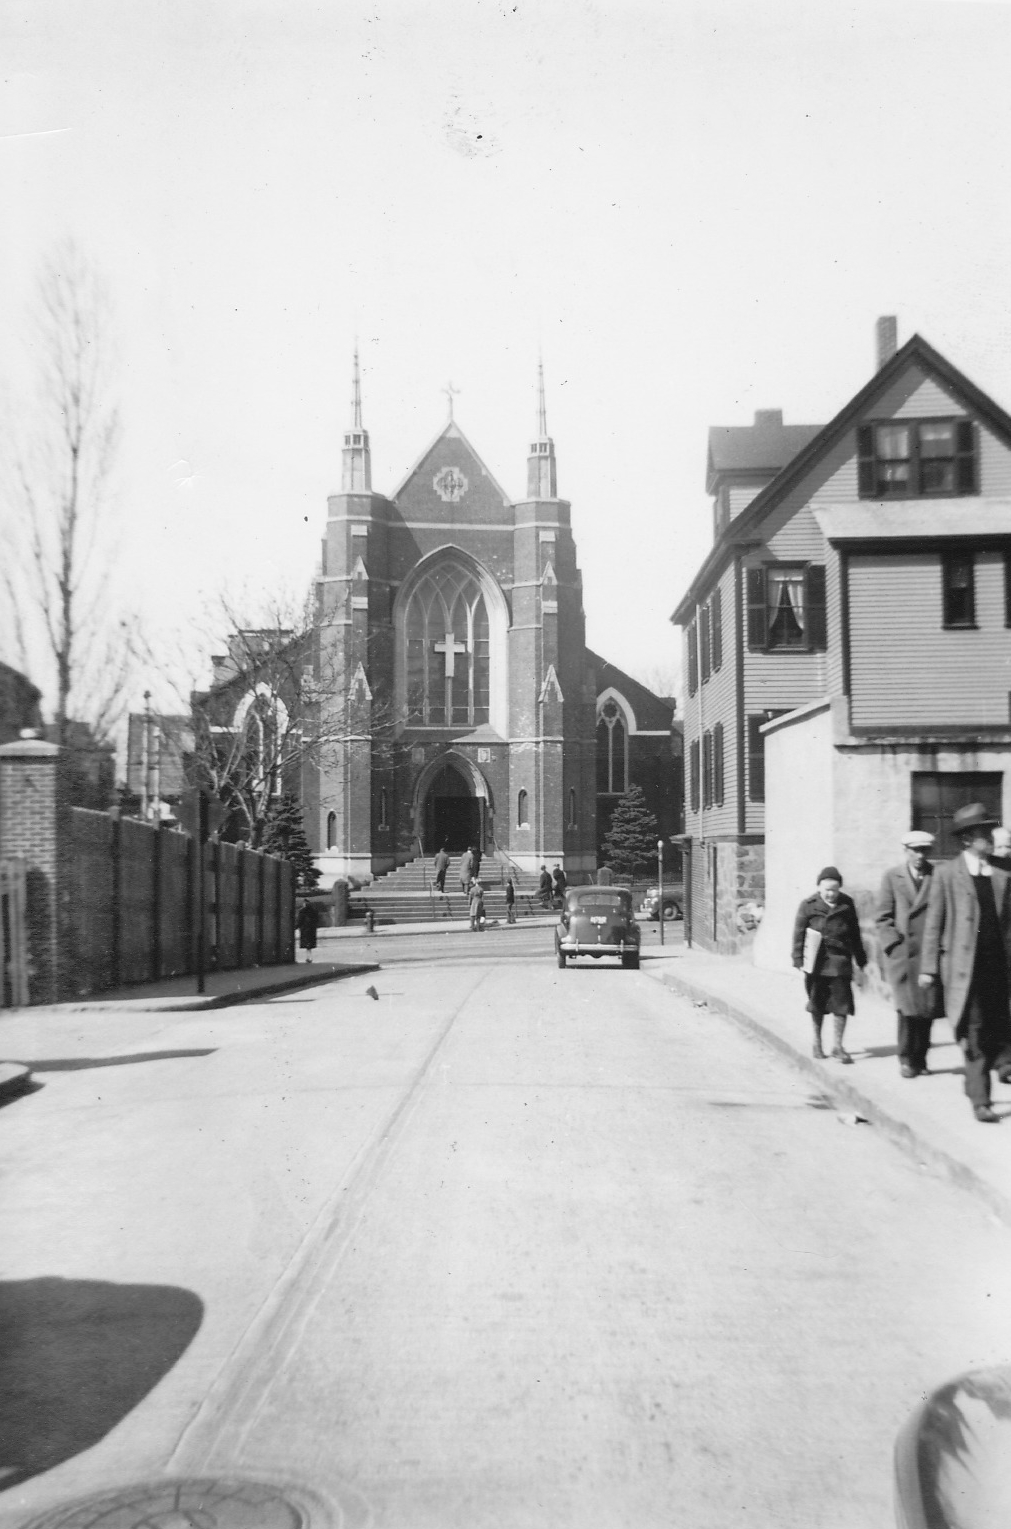 The redesign of the facade of St. Thomas Aquinas Church (view from Child Street), about 1940. Courtesy of Richard Heath (personal collection)